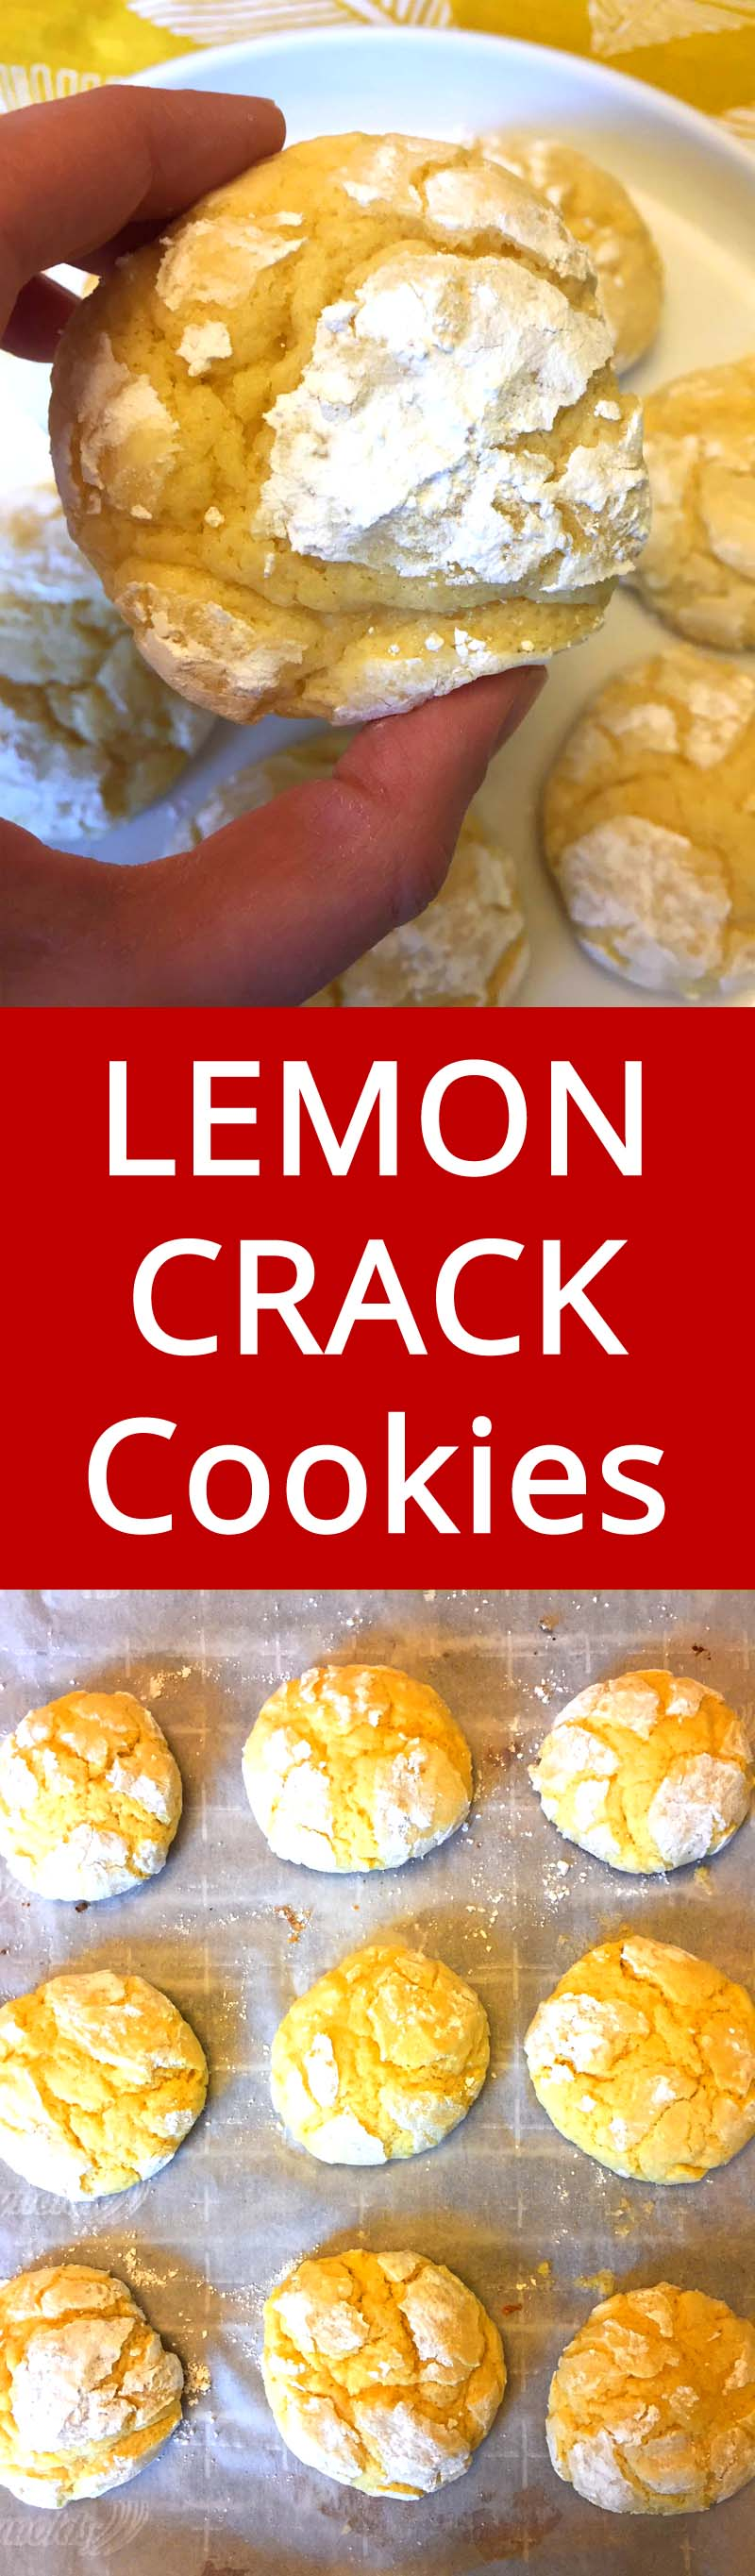 Hahaha CRACK is right! These cookies are sooo addictive! This is my favorite lemon crinkles cookies recipe - BEST EVER!